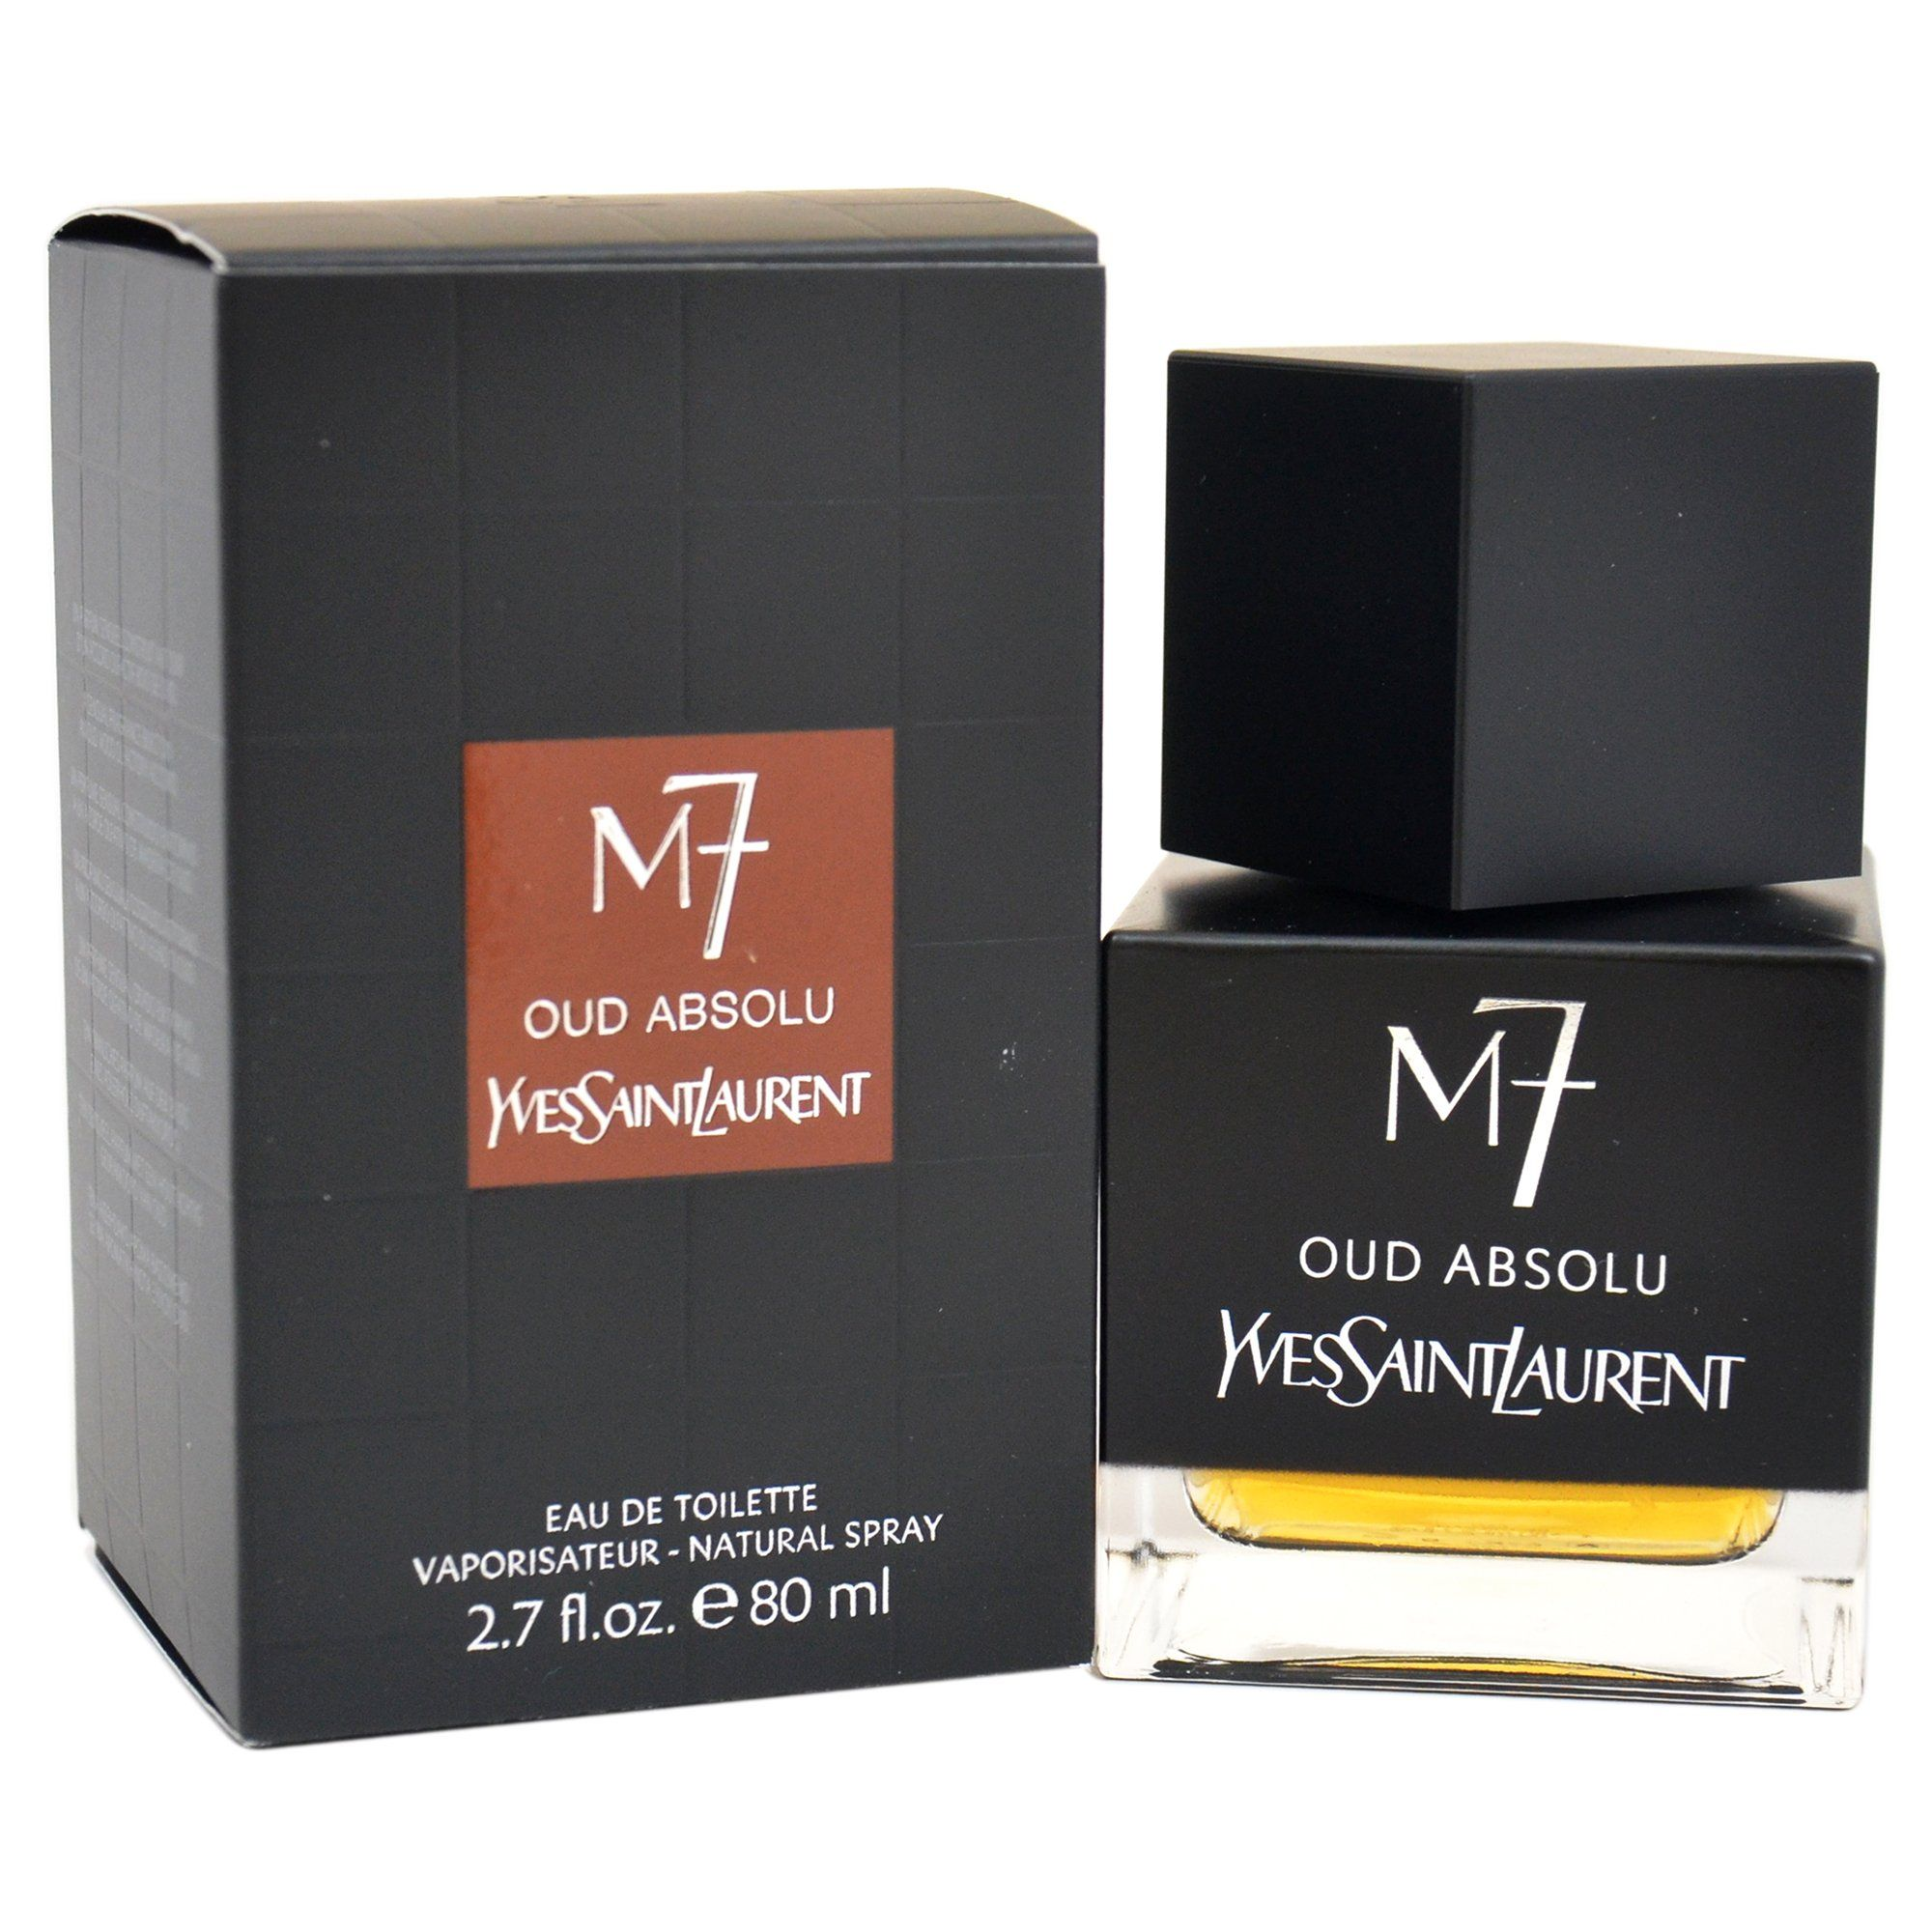 YSL M7 OUD ABSOLU 80ml EDT